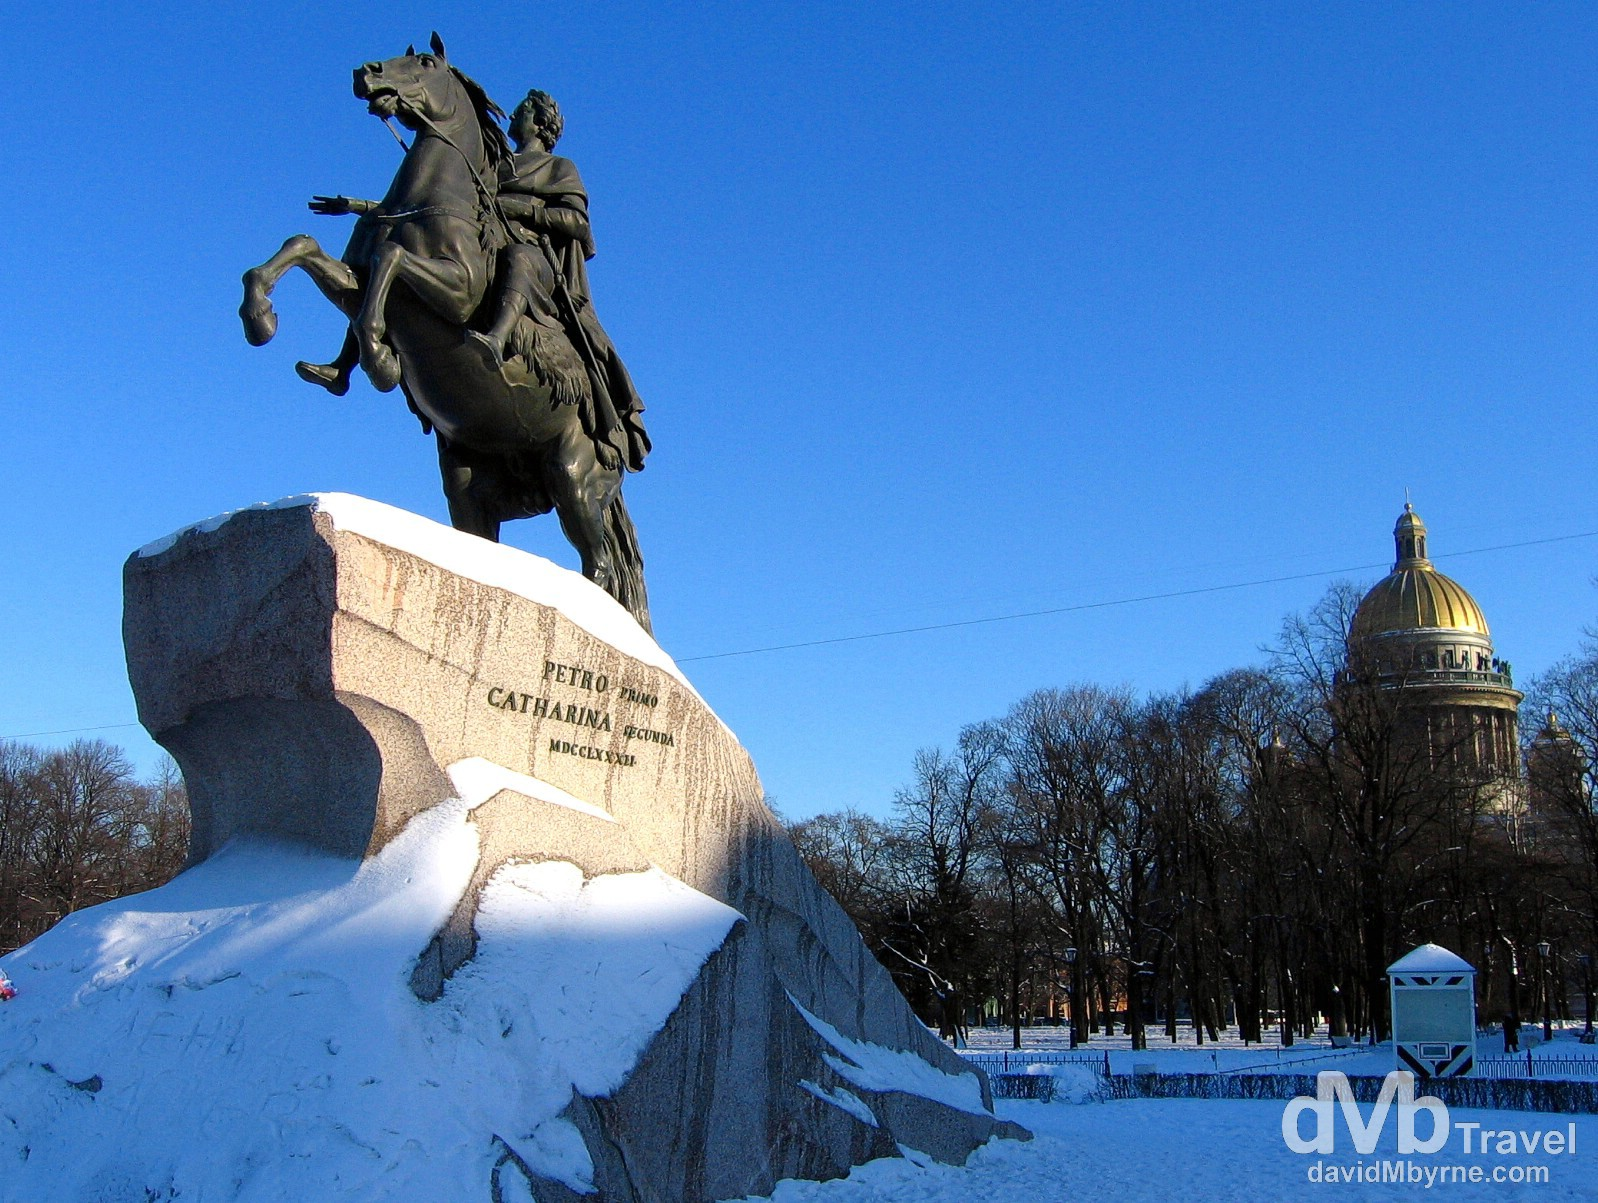 The statue The Bronze Horseman in ploshchad Dekabristov (Decembrists Square) in St Petersburg, Russia. February 27, 2006.